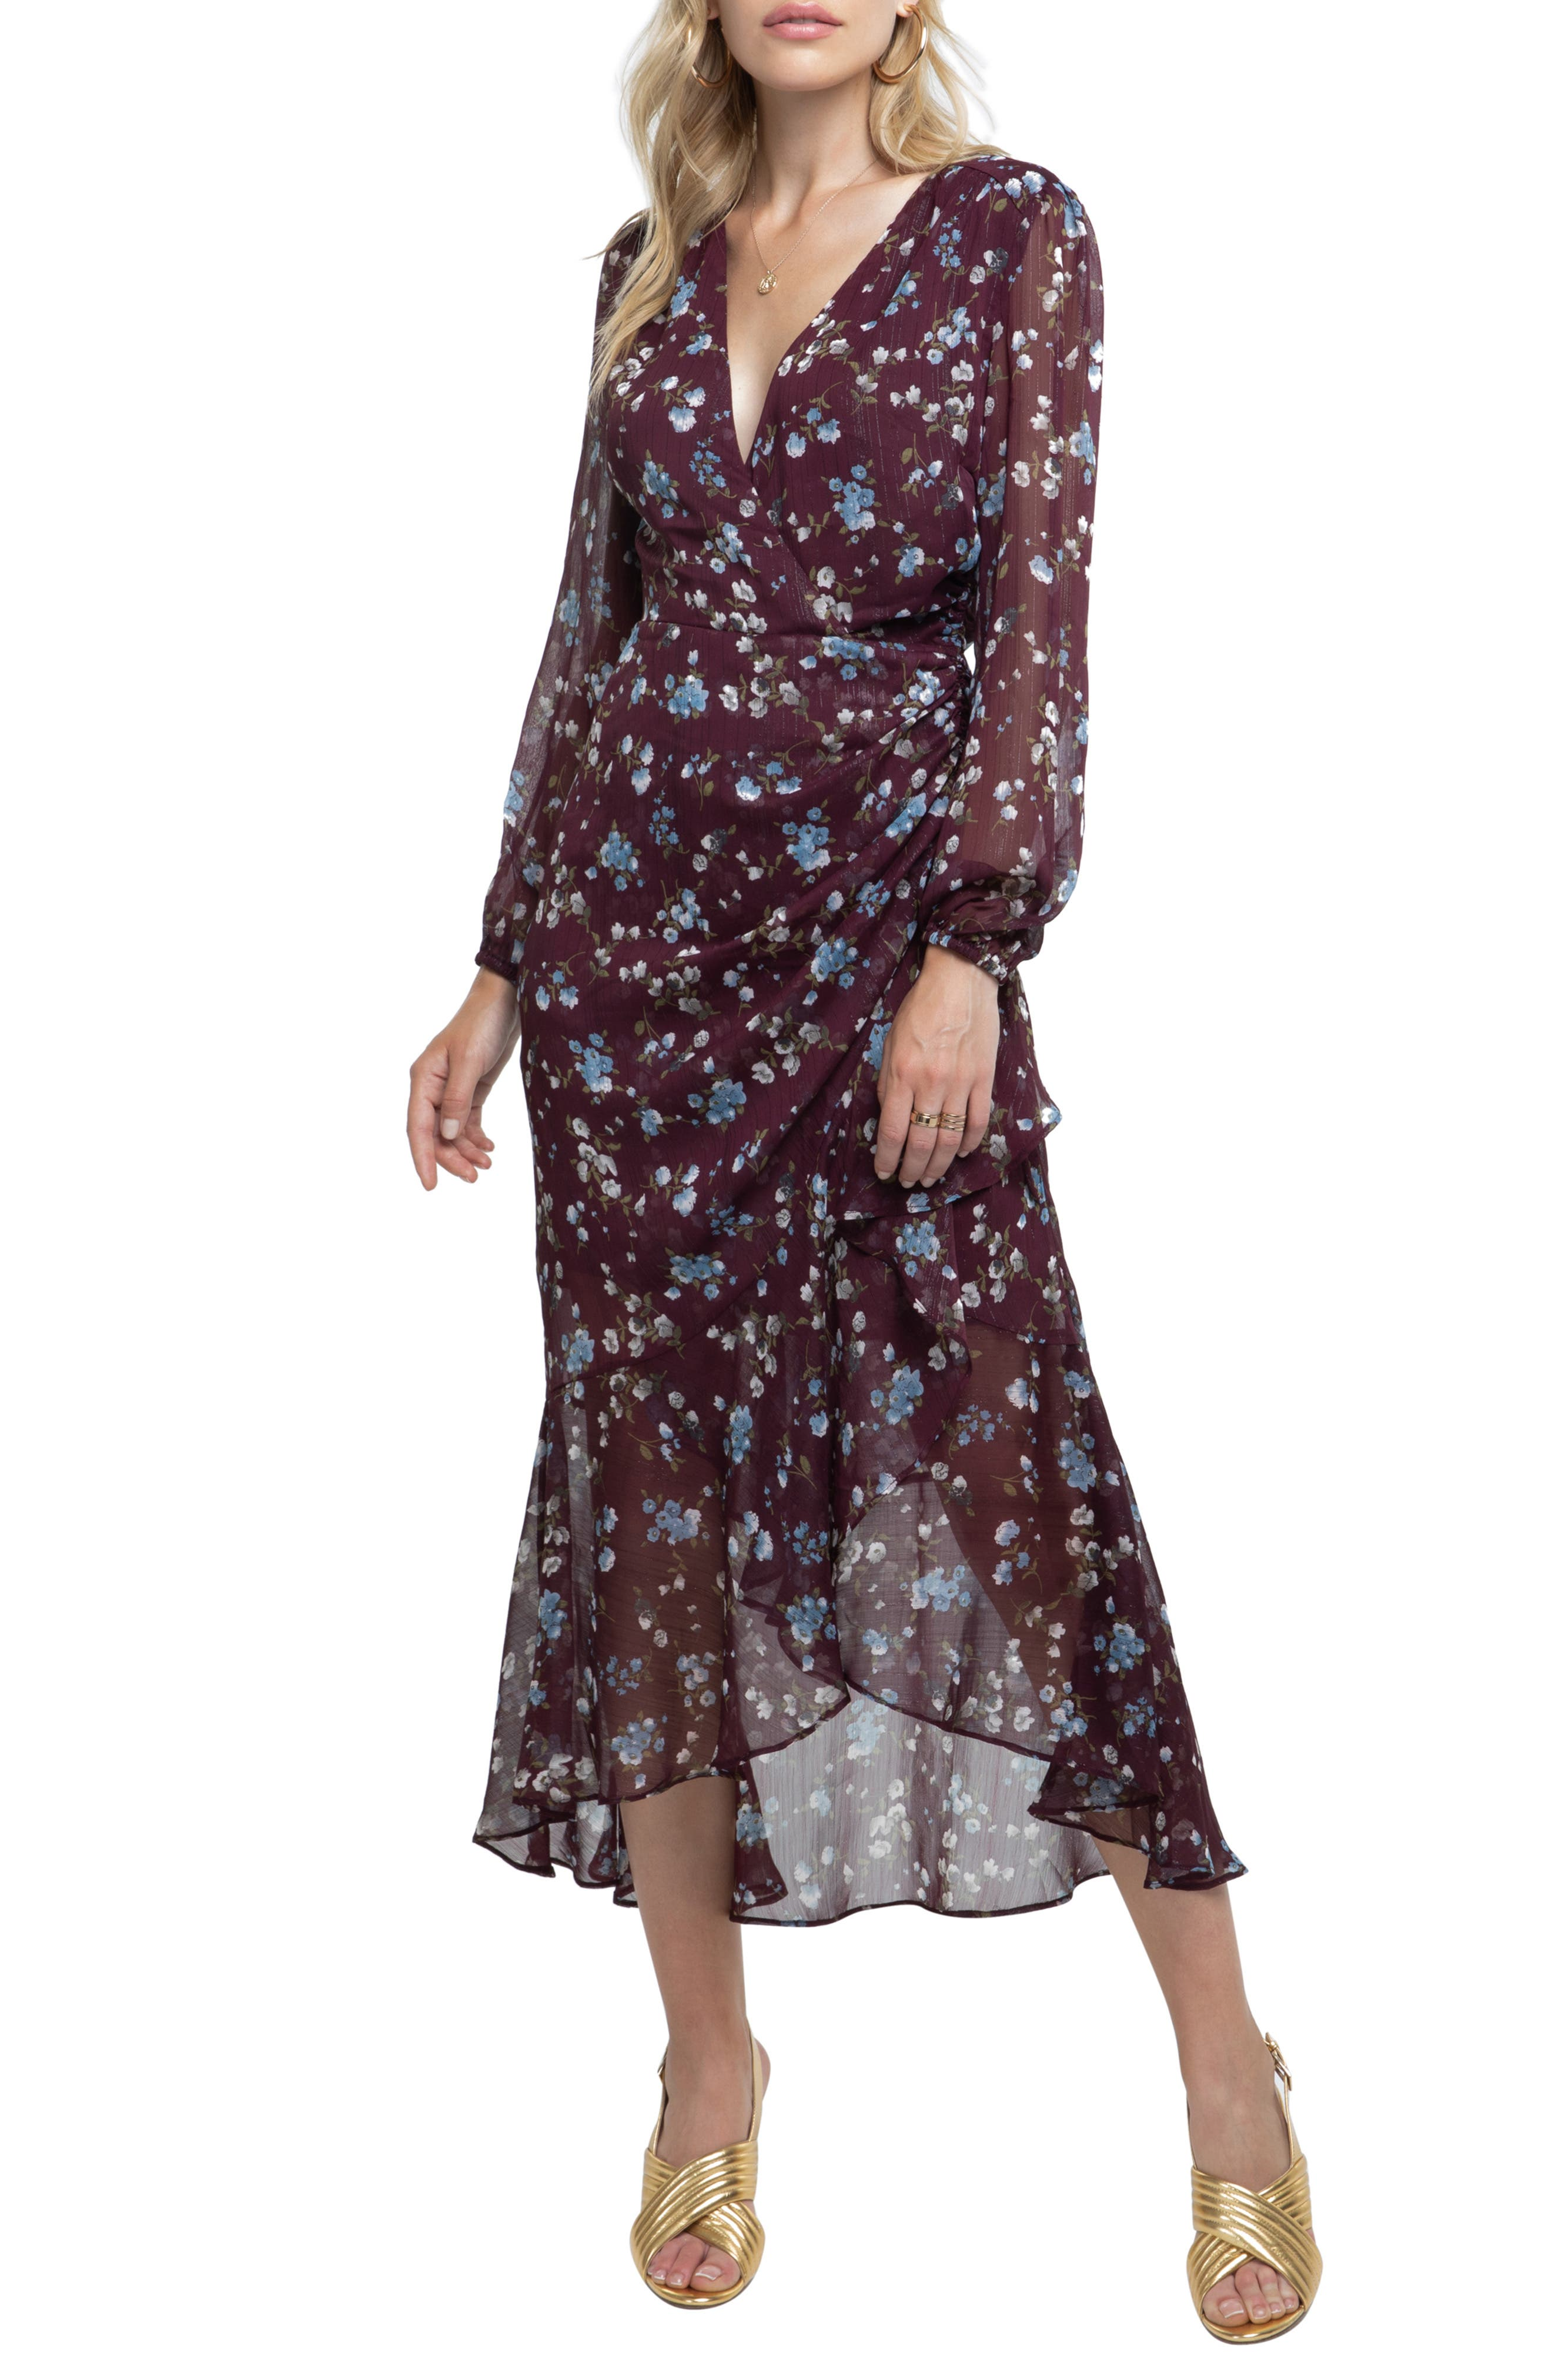 ASTR THE LABEL, Side Cinched Ruffle Hem Dress, Main thumbnail 1, color, WINE FLORAL